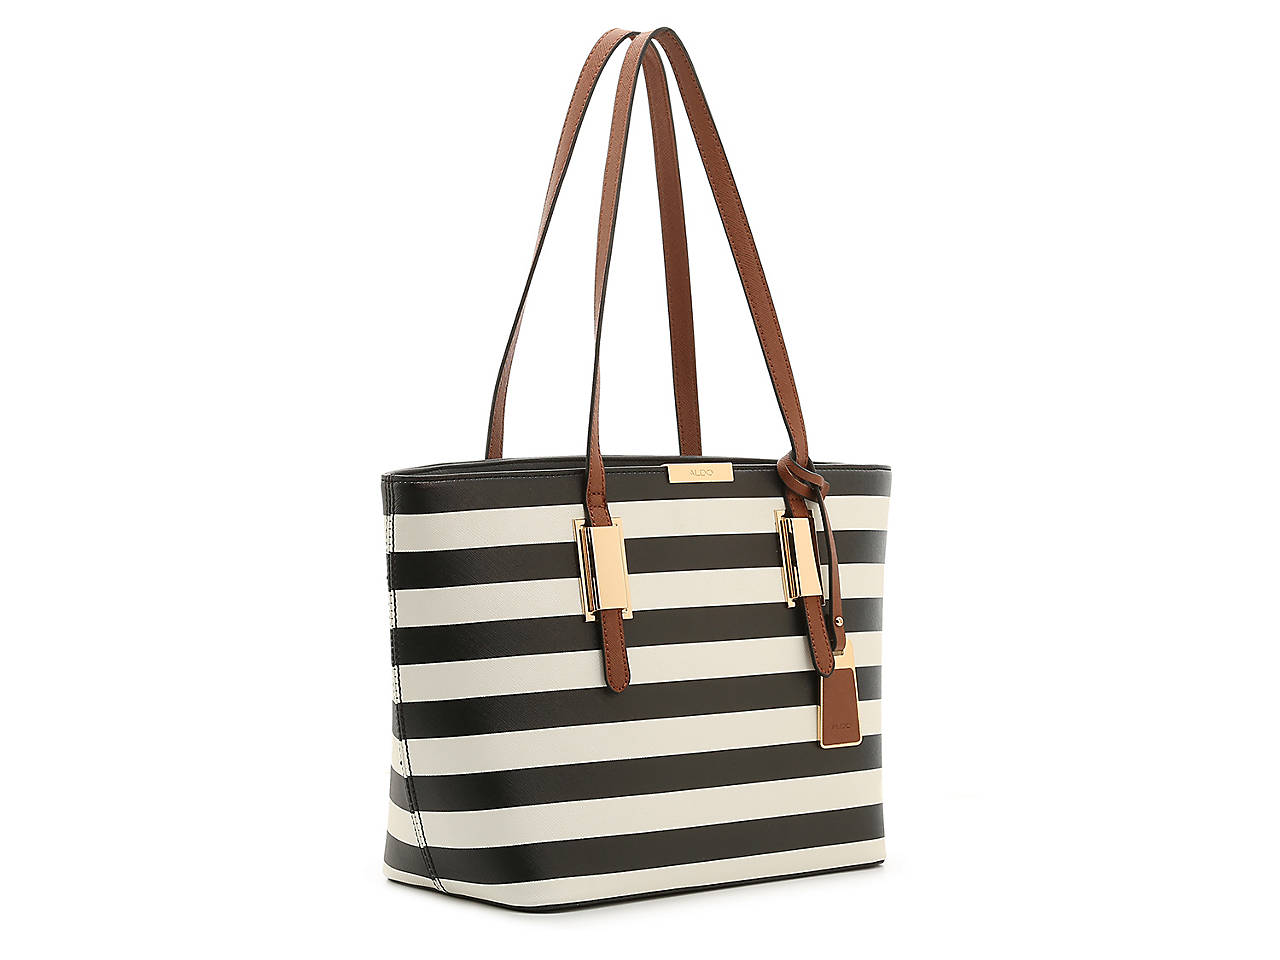 168e8b95f4 Aldo Afadollaa Tote Women s Handbags   Accessories